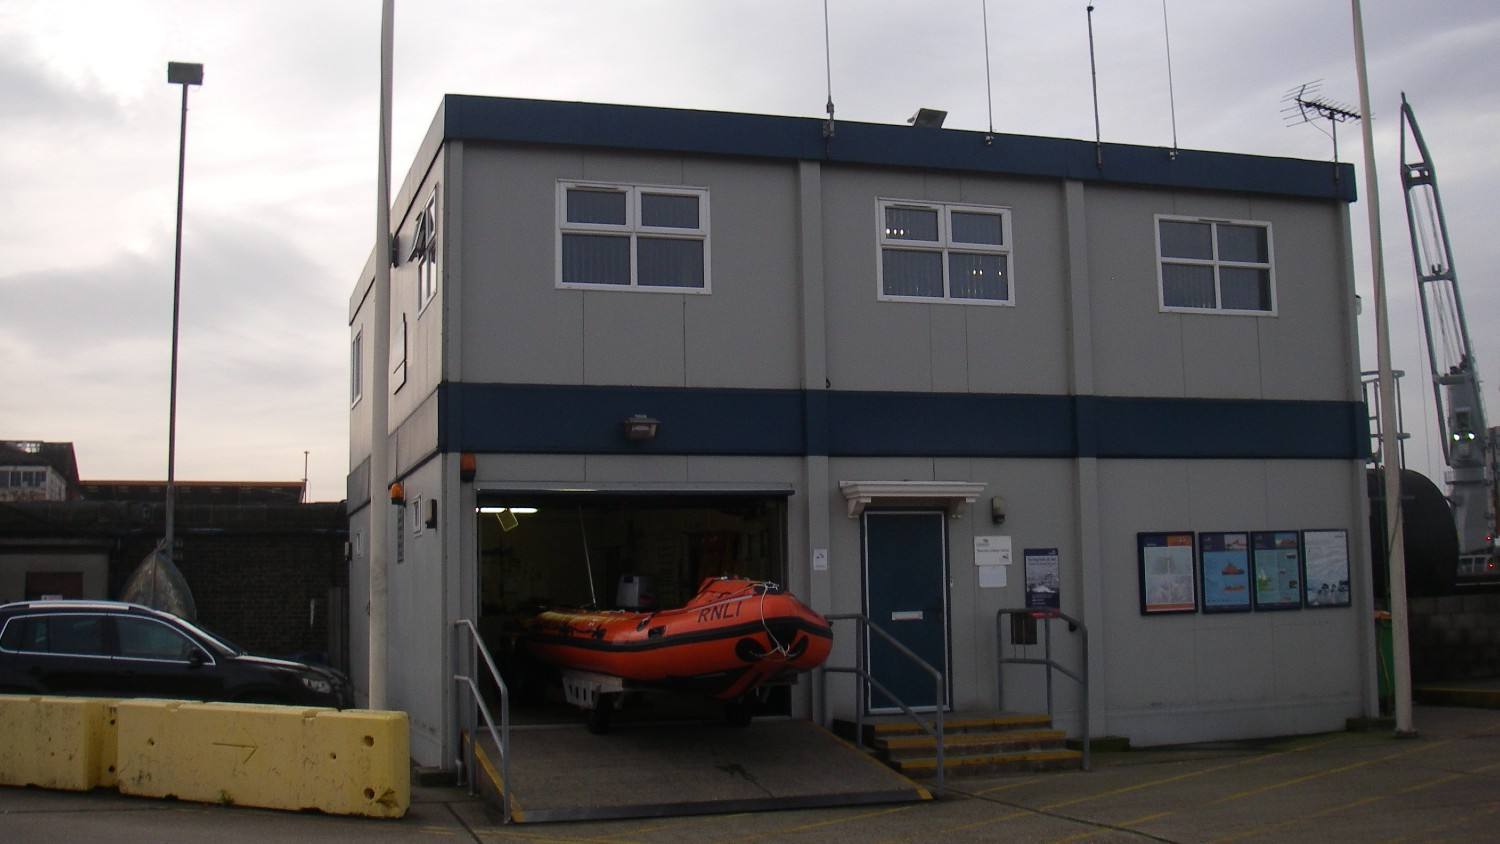 Sheerness Lifeboat Station